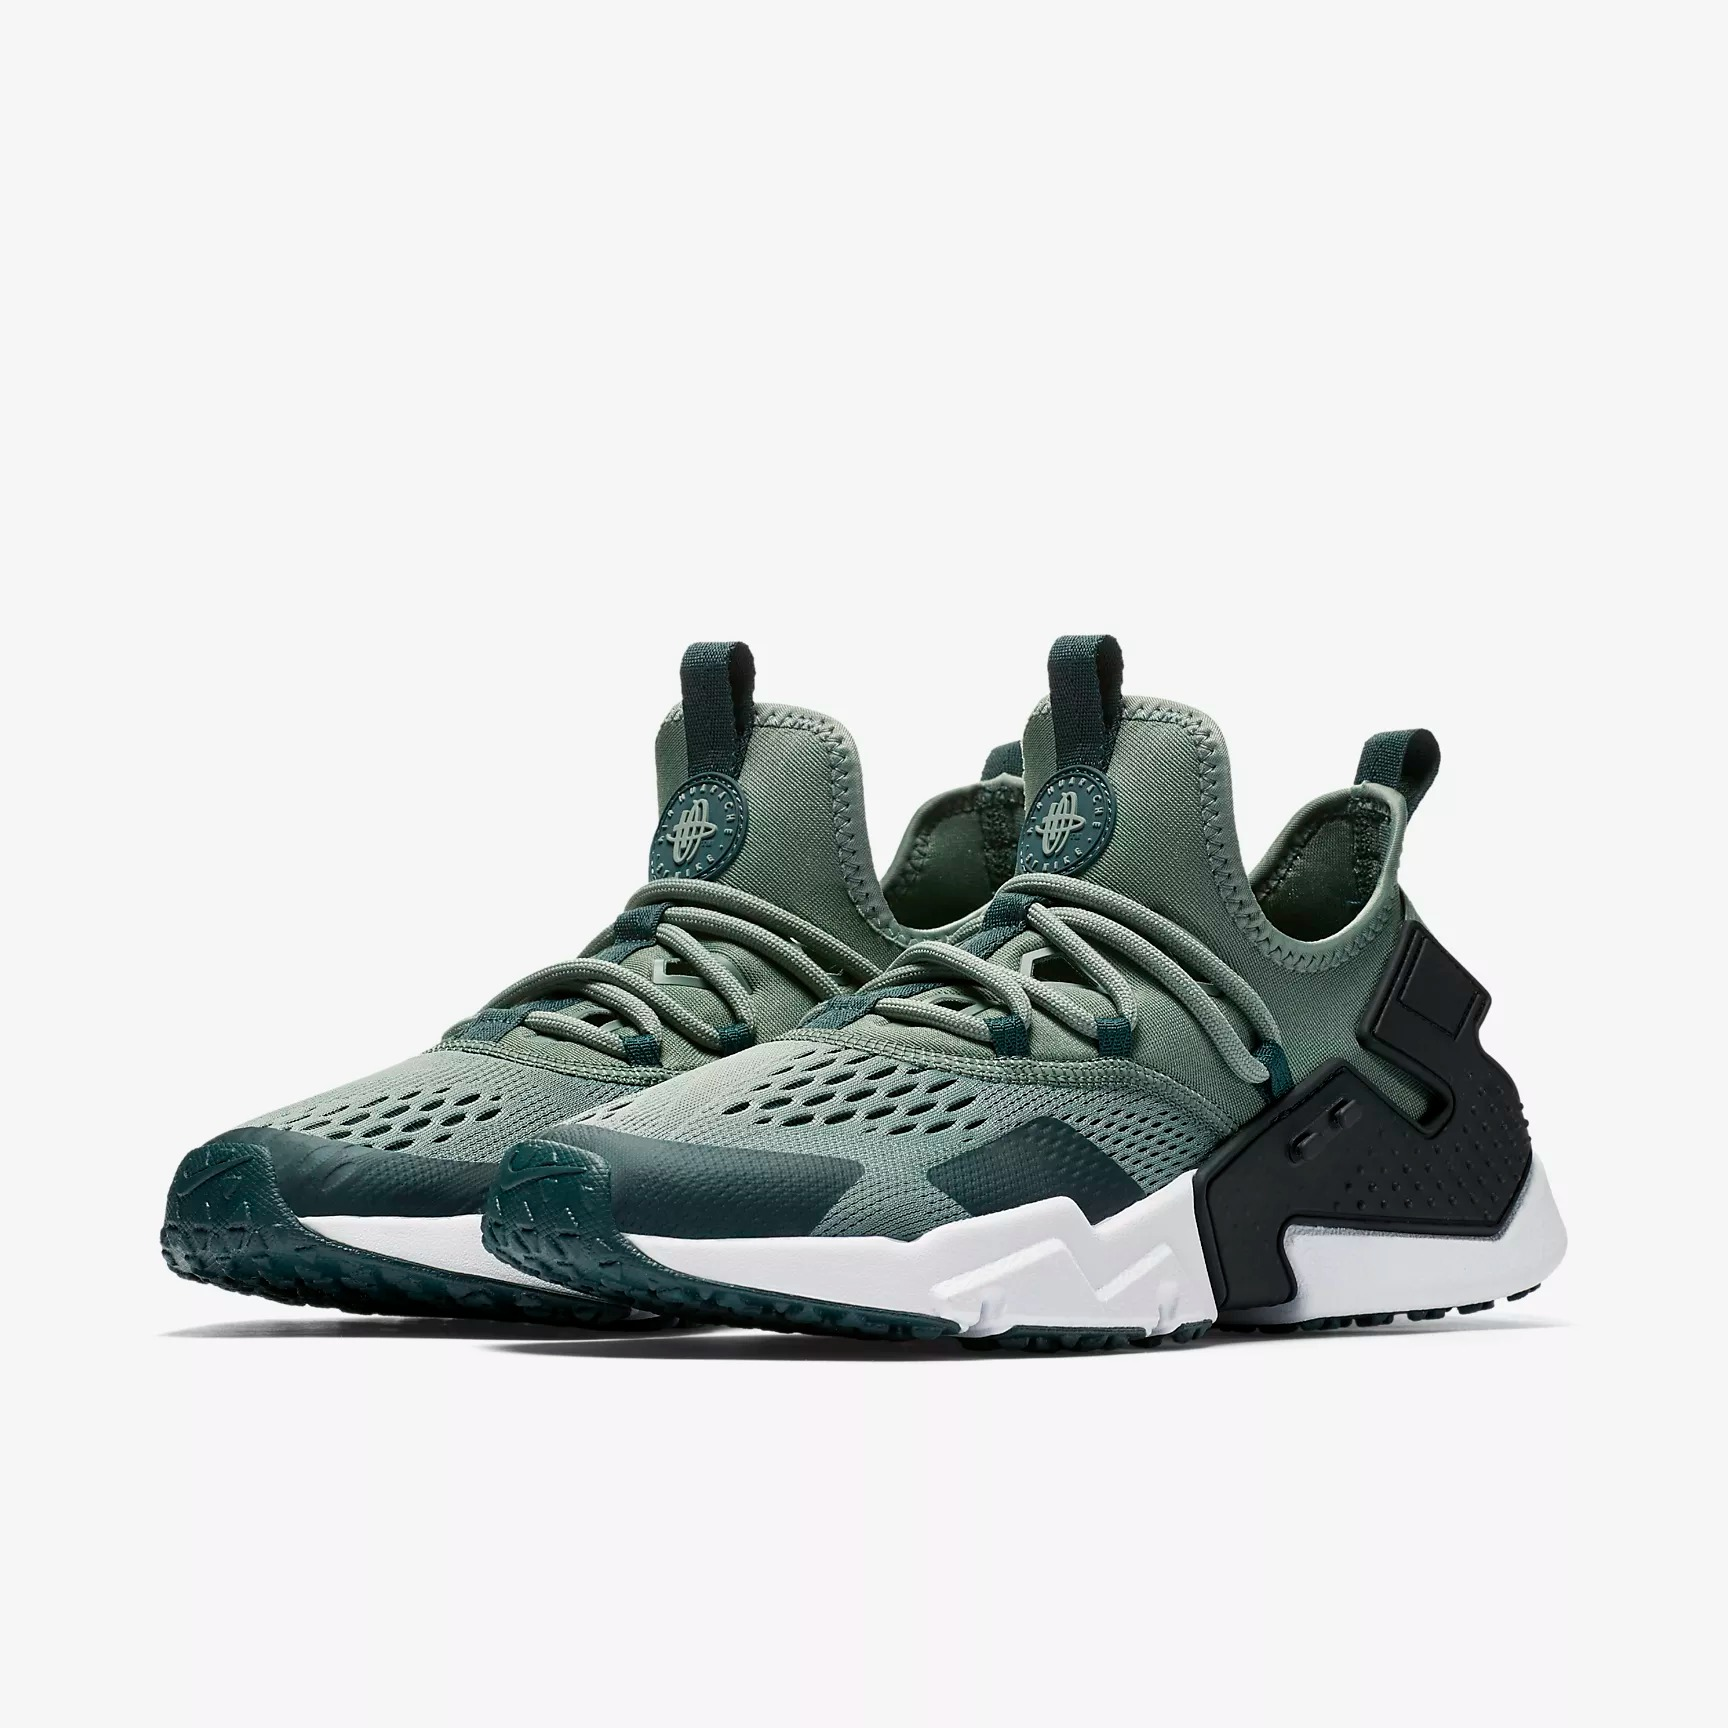 b486ff1ef362 Nike Air Huarache Drift Breathe Sneakers - SPORT SHOES Lifestyle Shoes